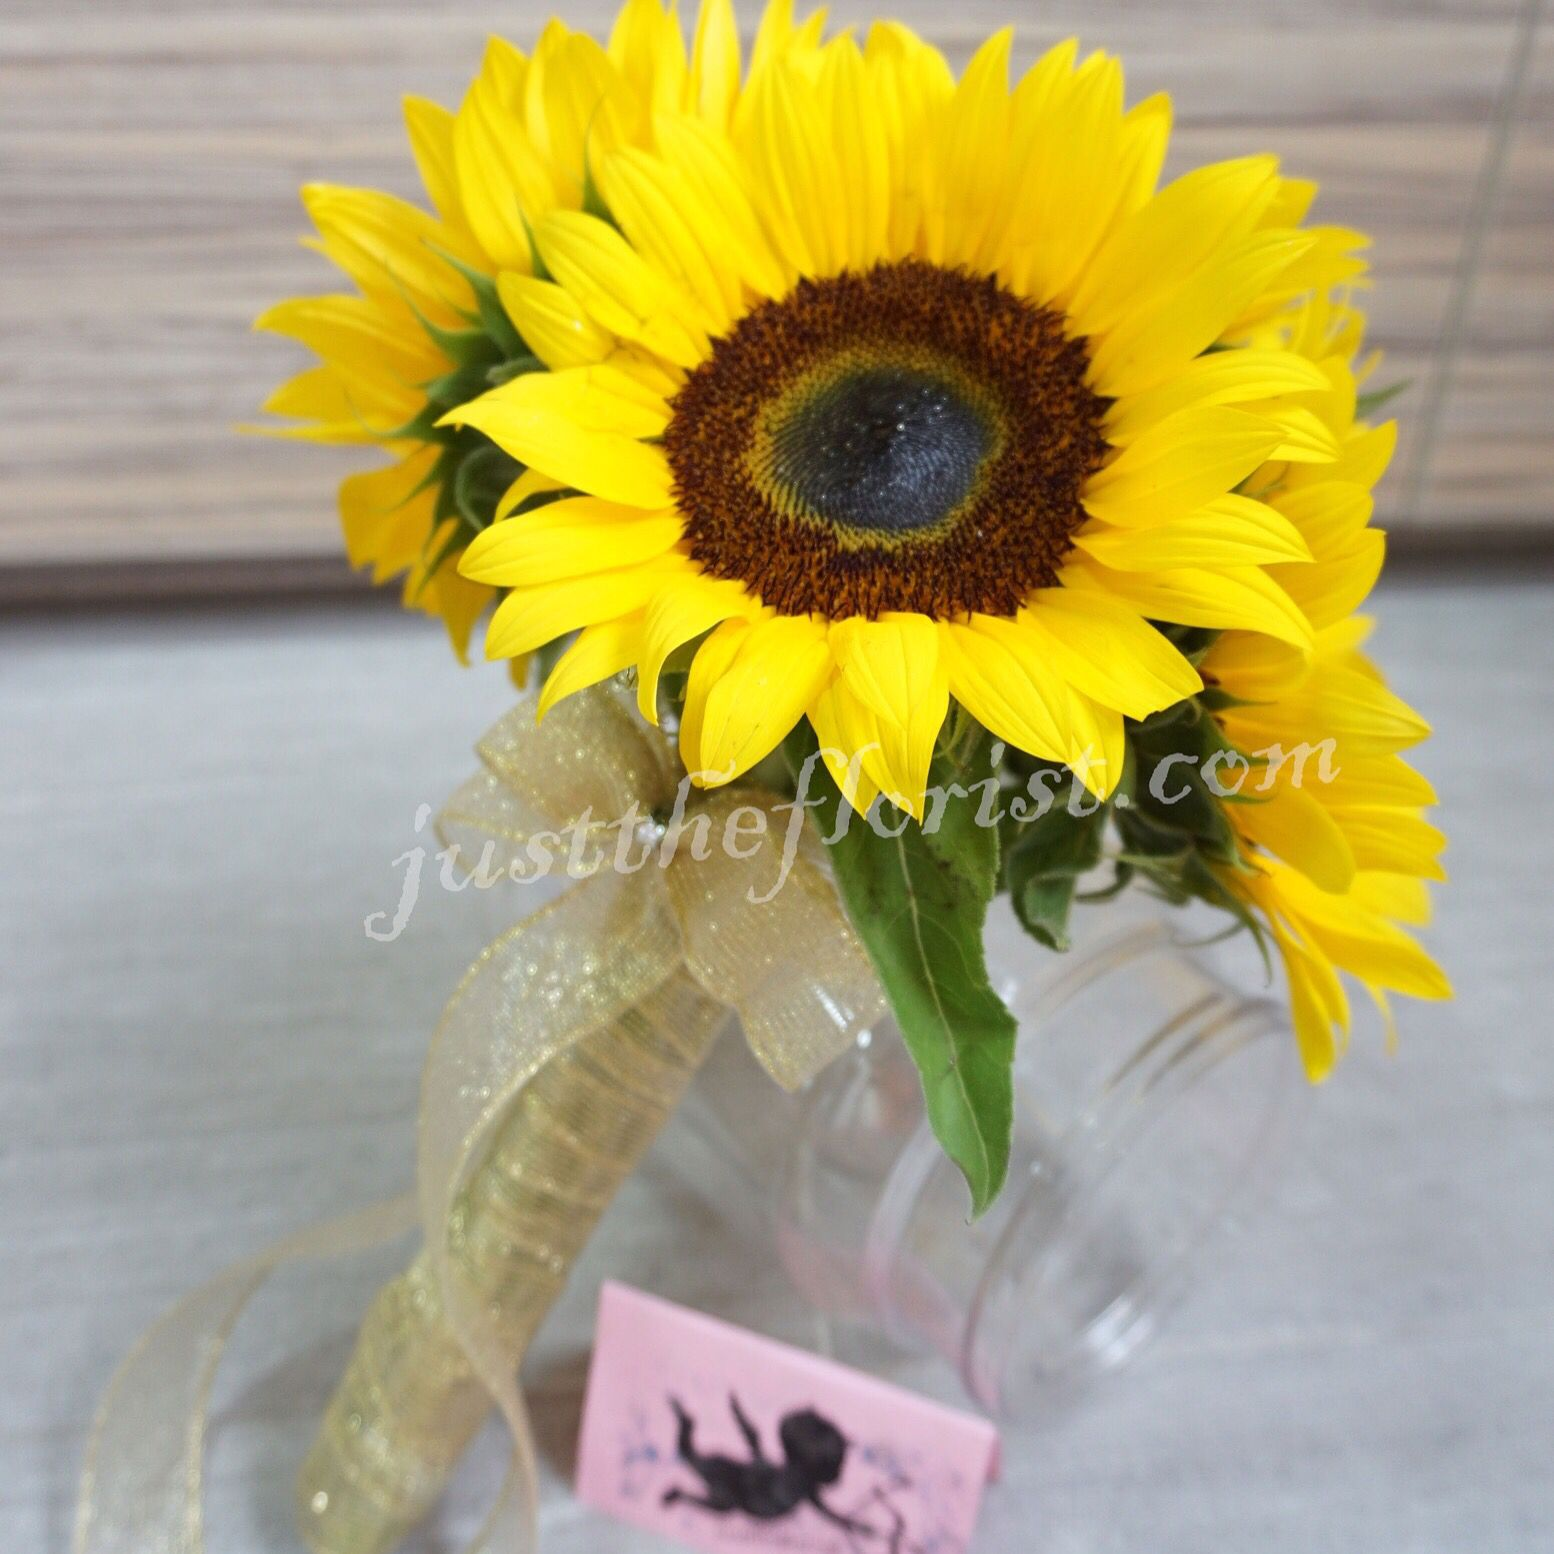 Sunflowers Are Symbolic Of Adoration Sunflower Hydra Rose Bouquet Valentine Rom Wedding Events Motherday Flower Delivery Hand Bouquet Rainbow Roses